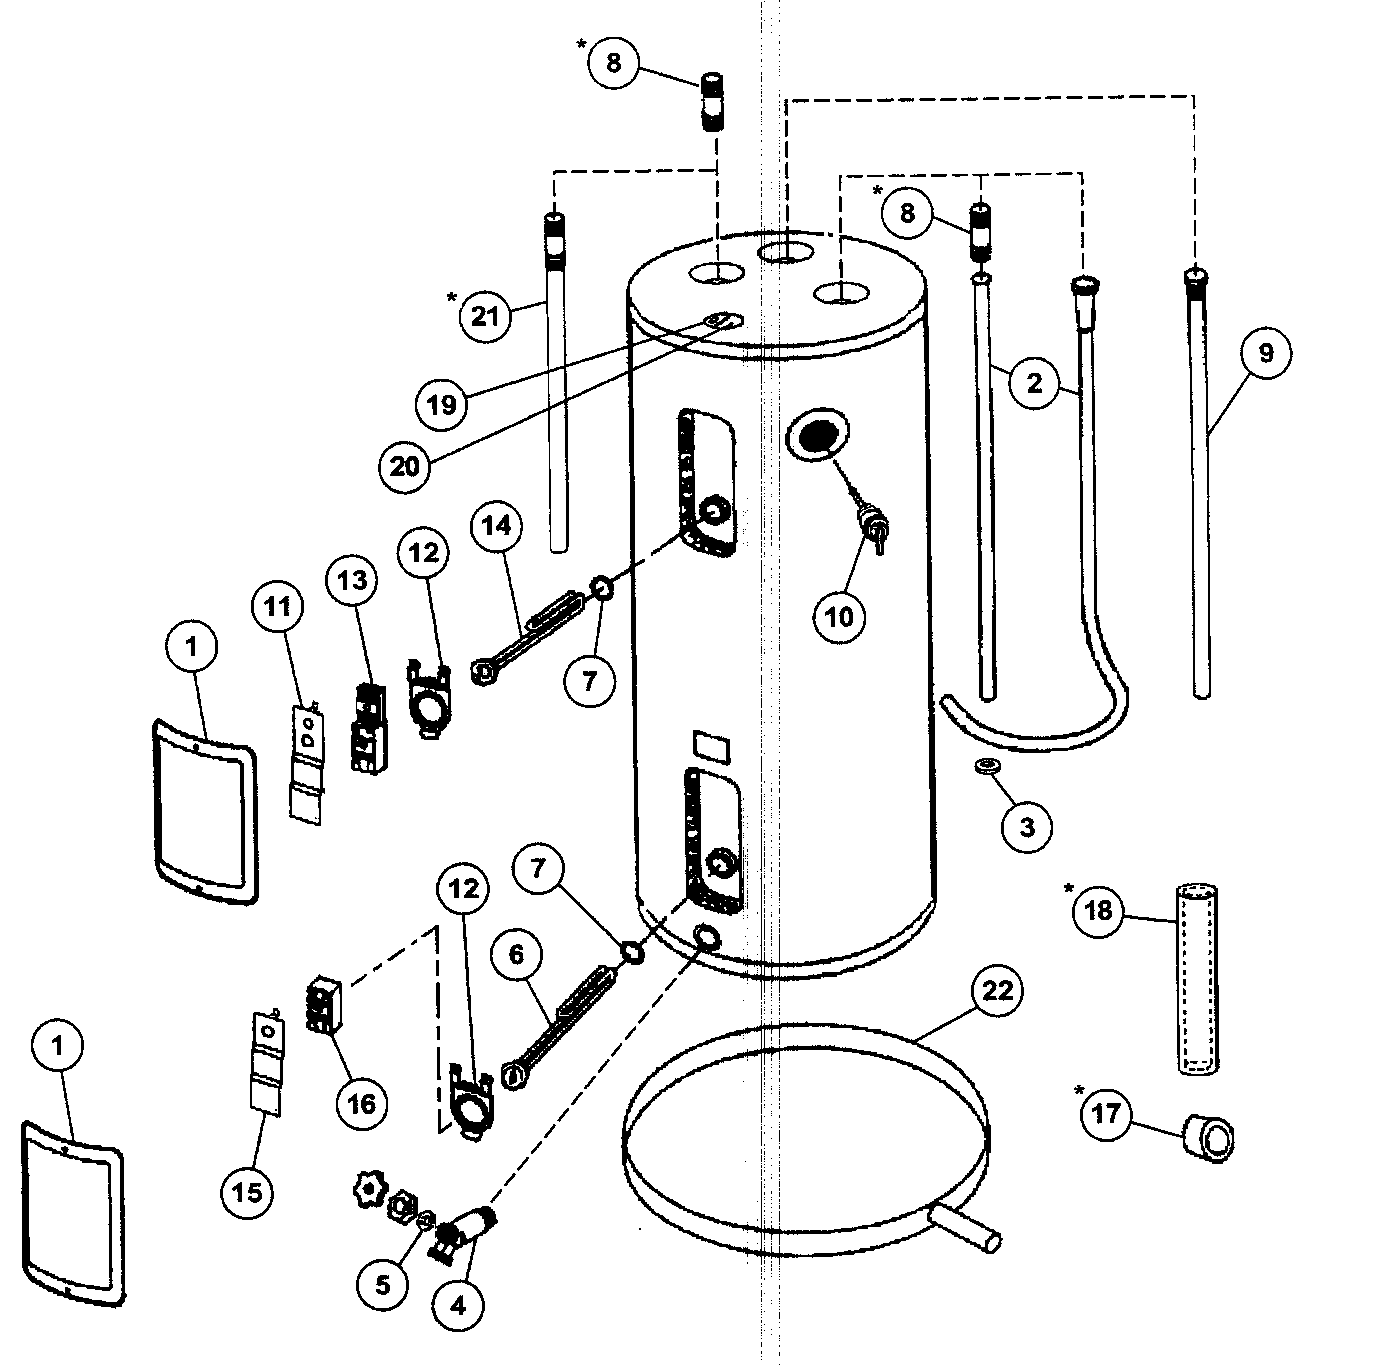 hight resolution of ao smith water heater wiring diagram